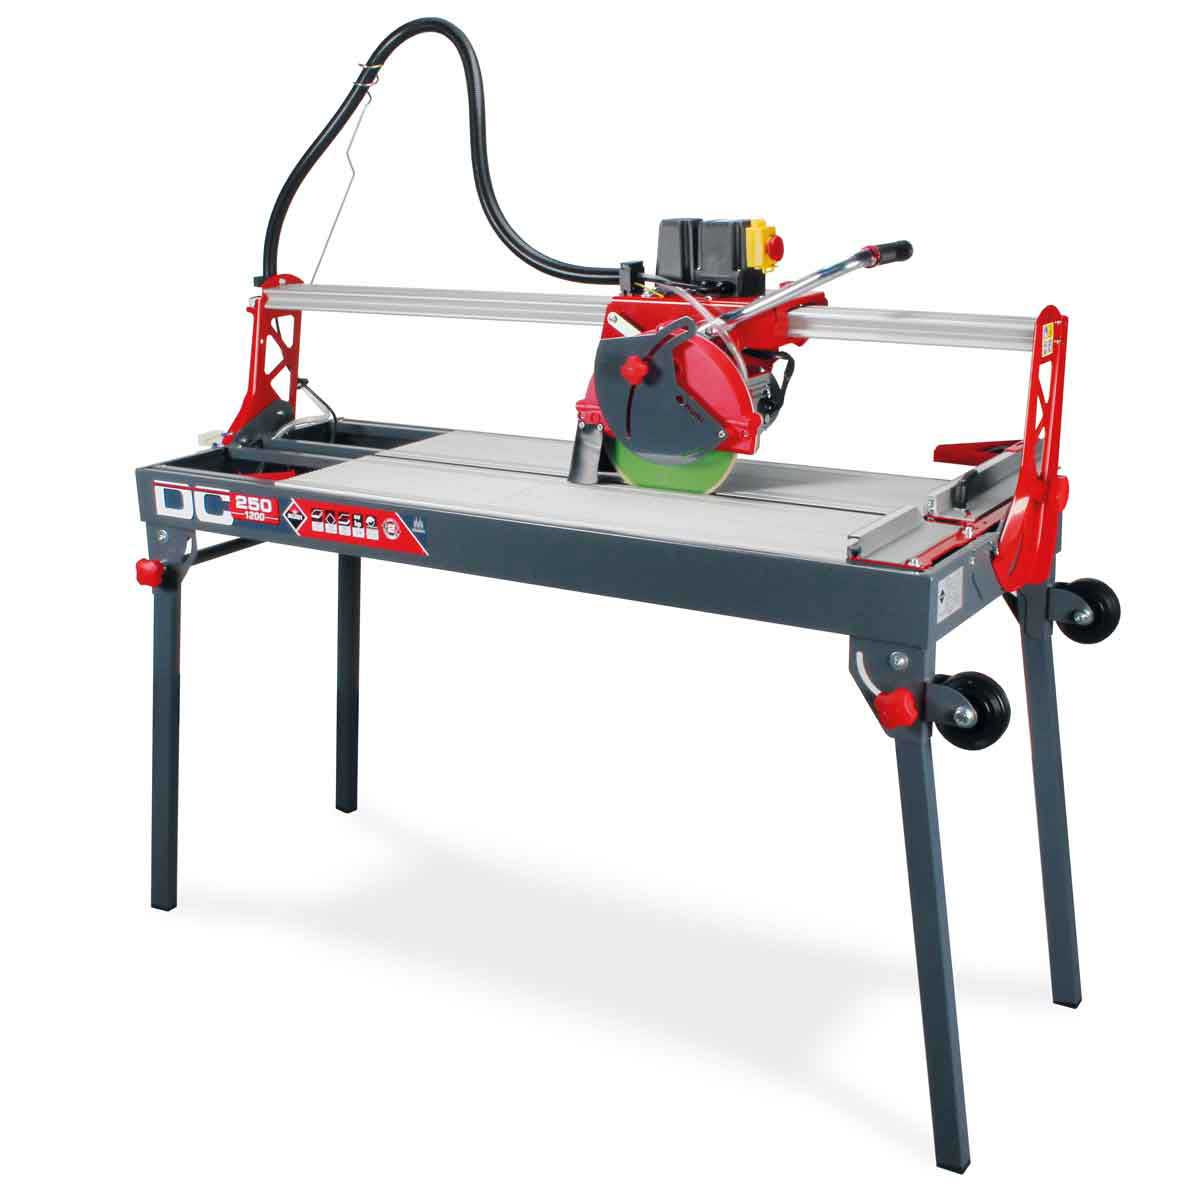 Rubi DC250-1200 Tile Wet Saw